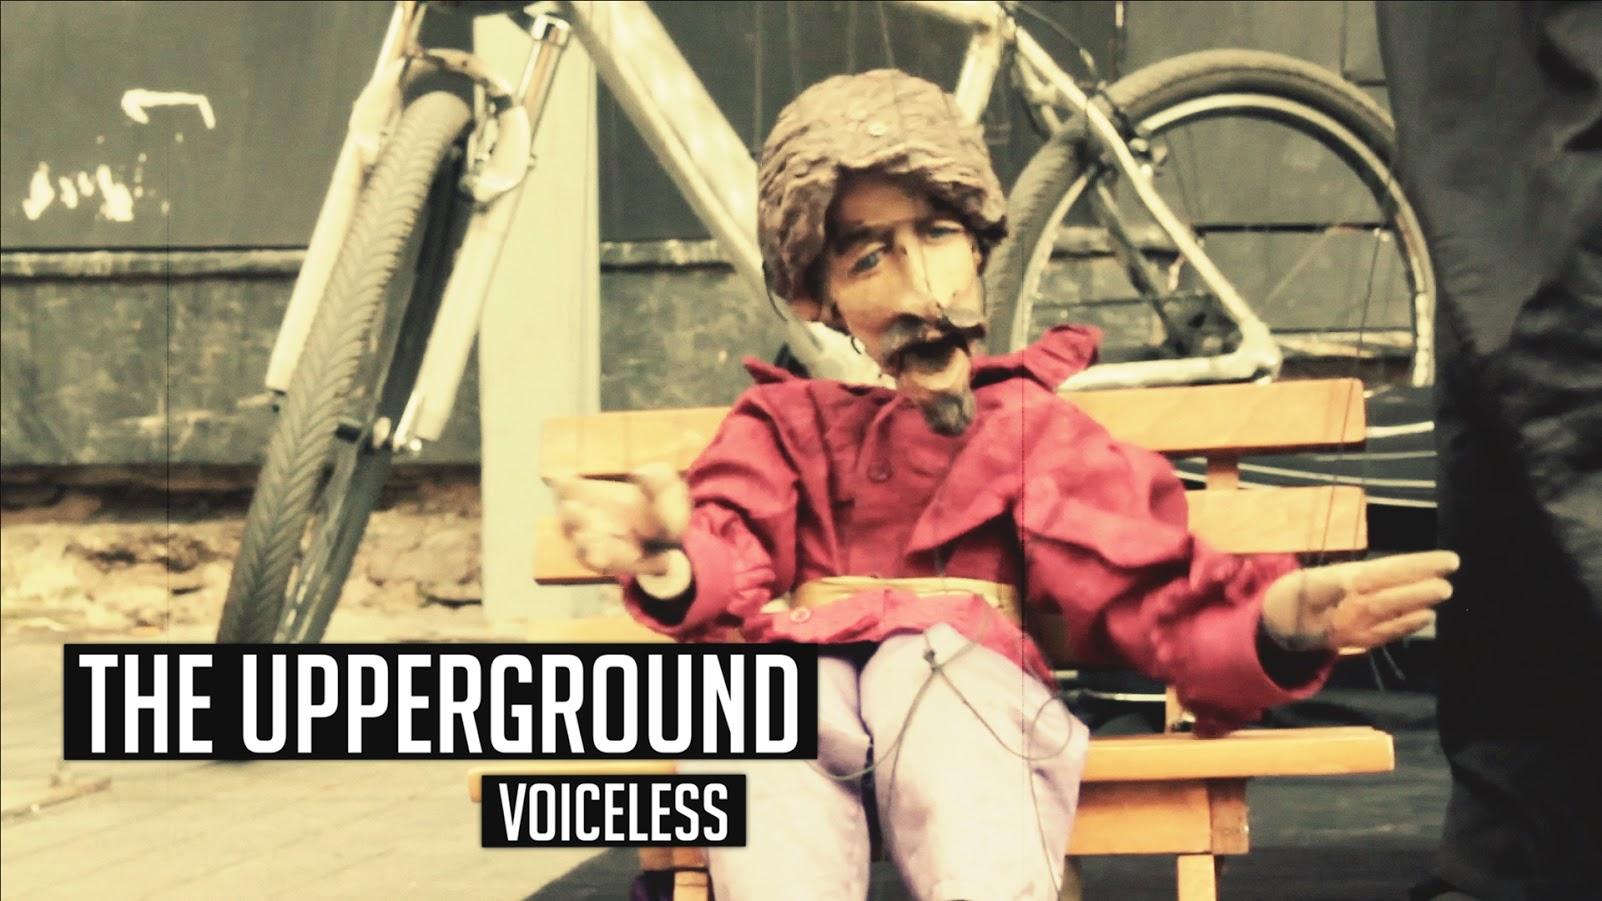 The Upperground voiceless